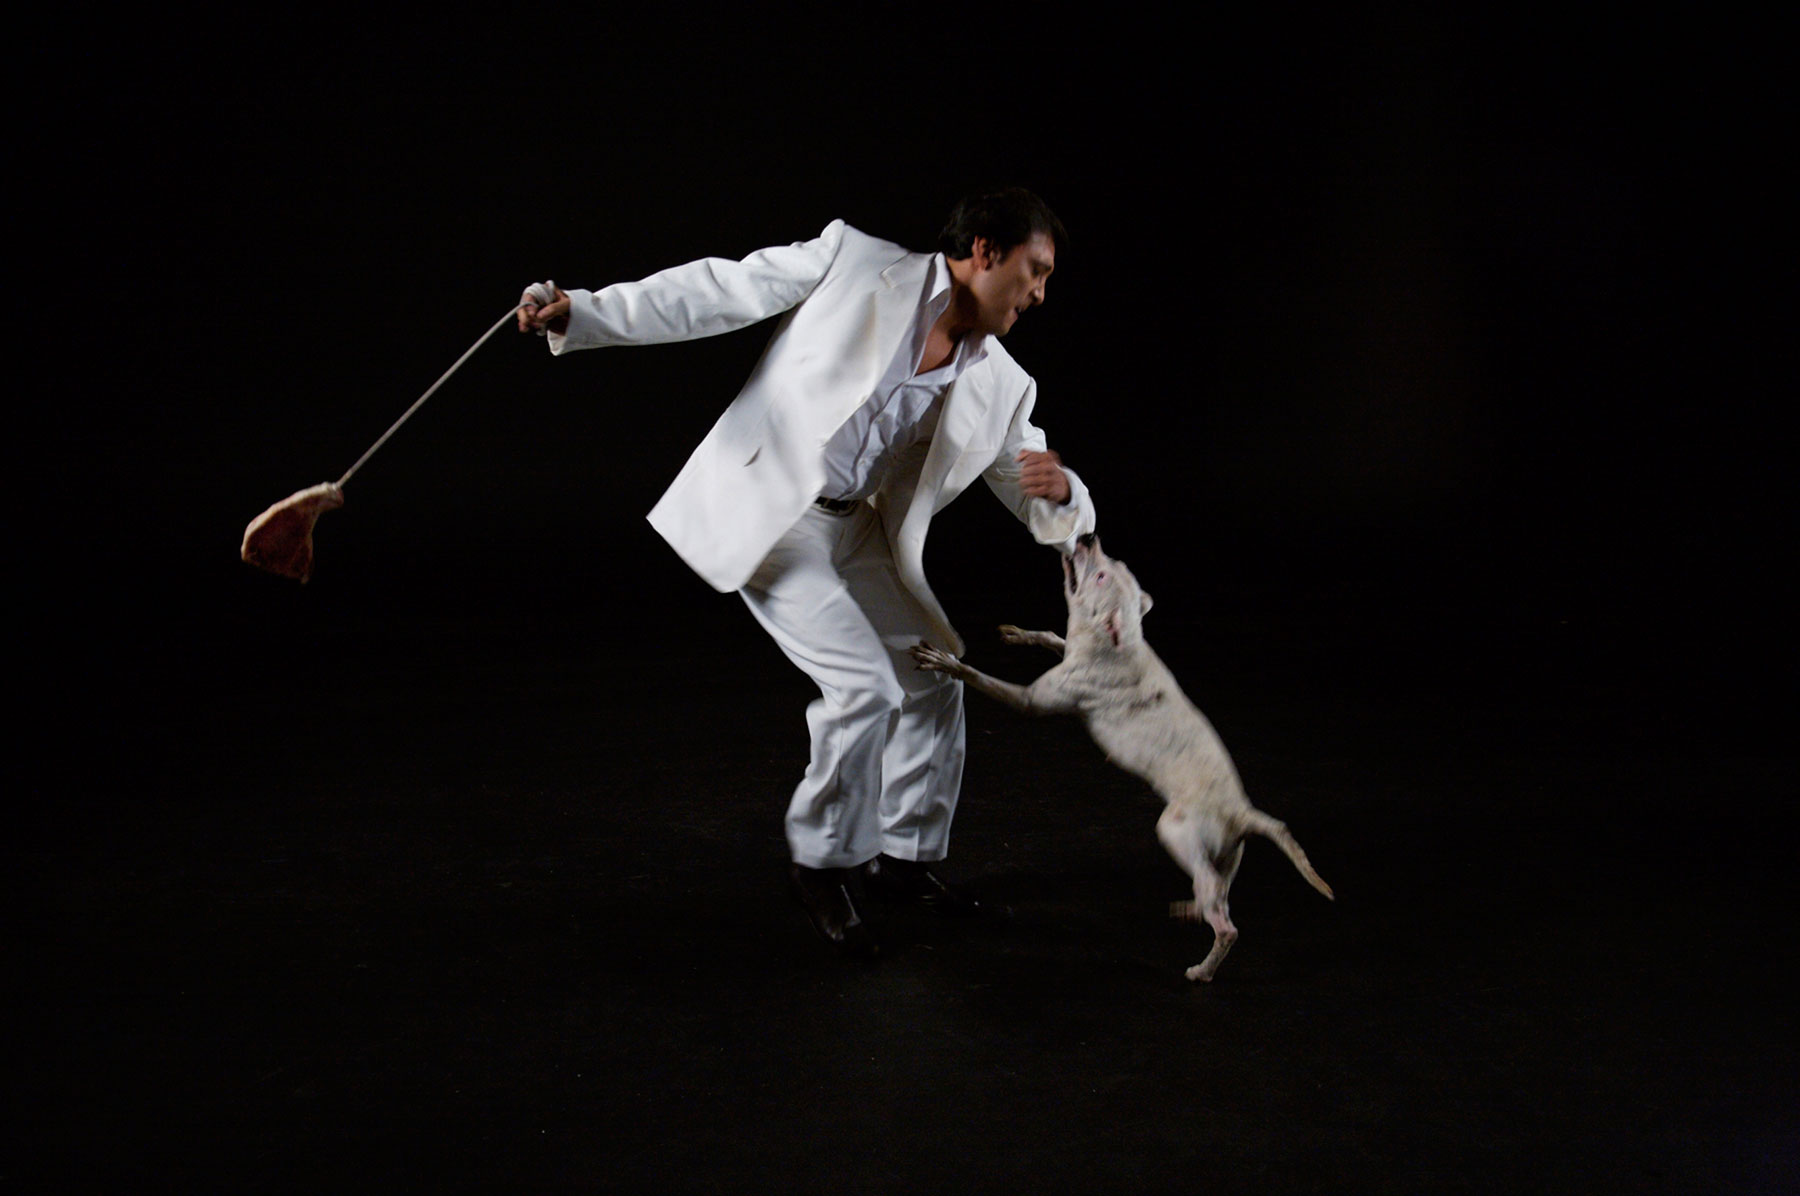 A man swinging a raw steak on a rope while a dog bites his sleeve